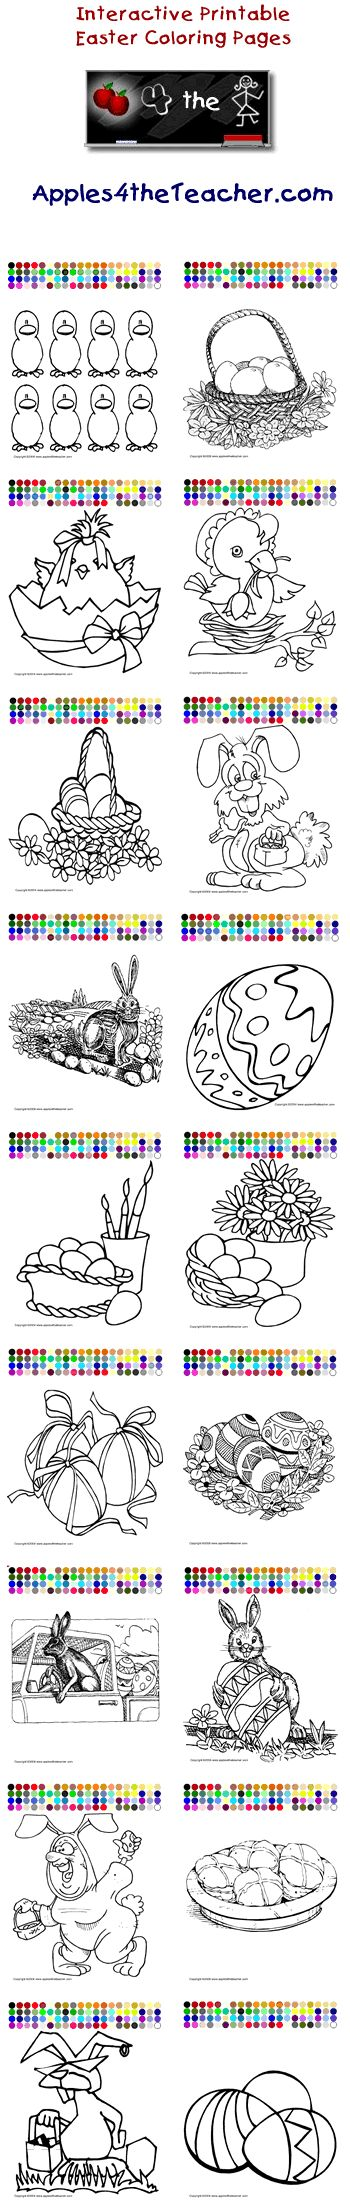 childrens interactive coloring pages - photo #36